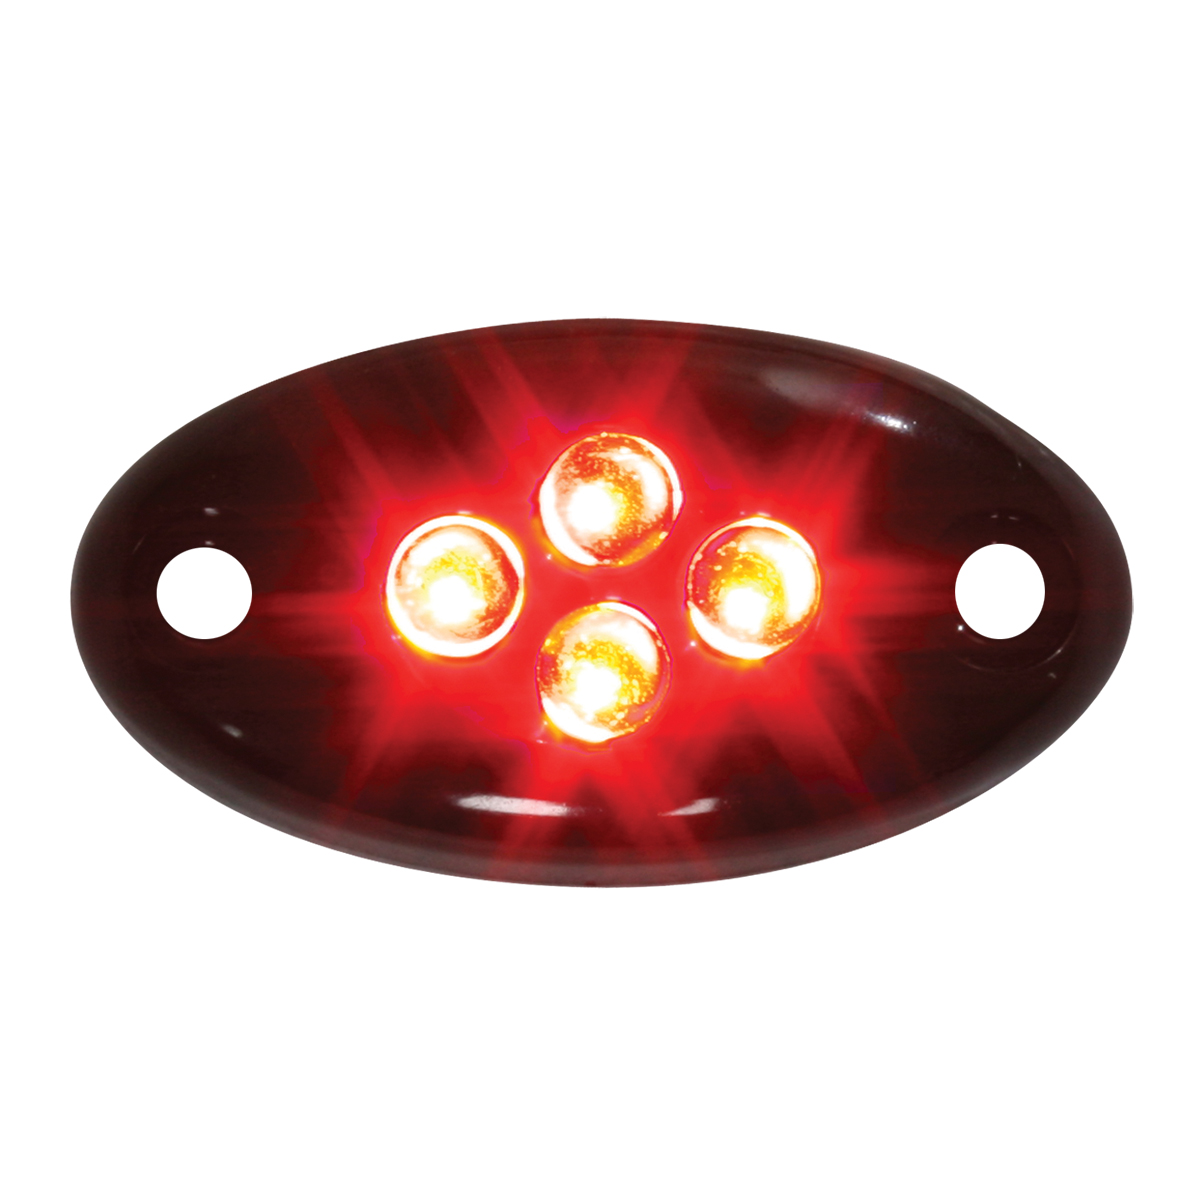 87433 Red Small Oval Black Plastic Courtesy LED Light